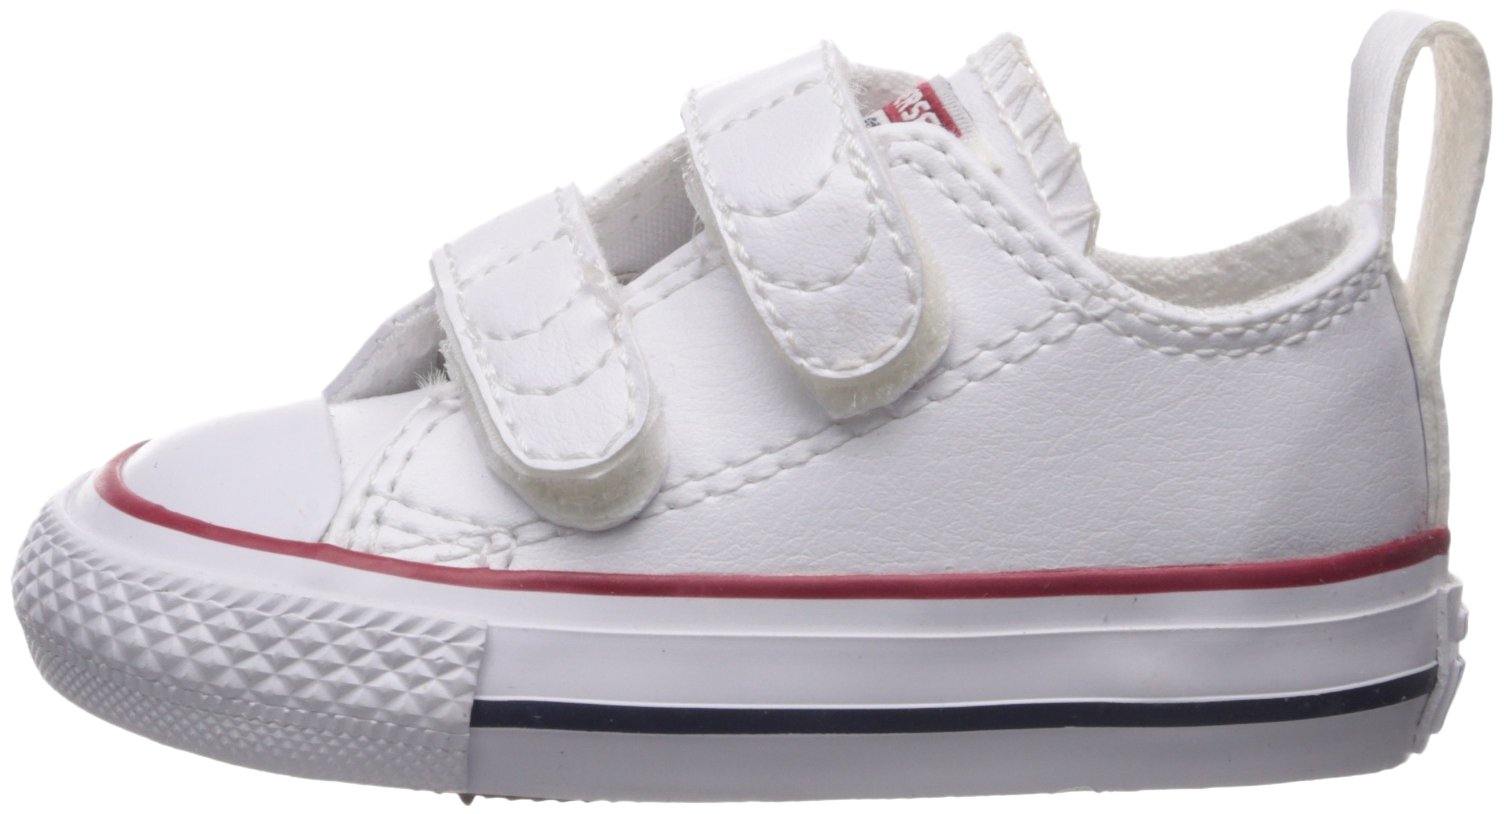 Converse Girl's Chuck Taylor All Star 2V Leather Low Top Shoe, White, 4 M US Toddler by Converse (Image #5)